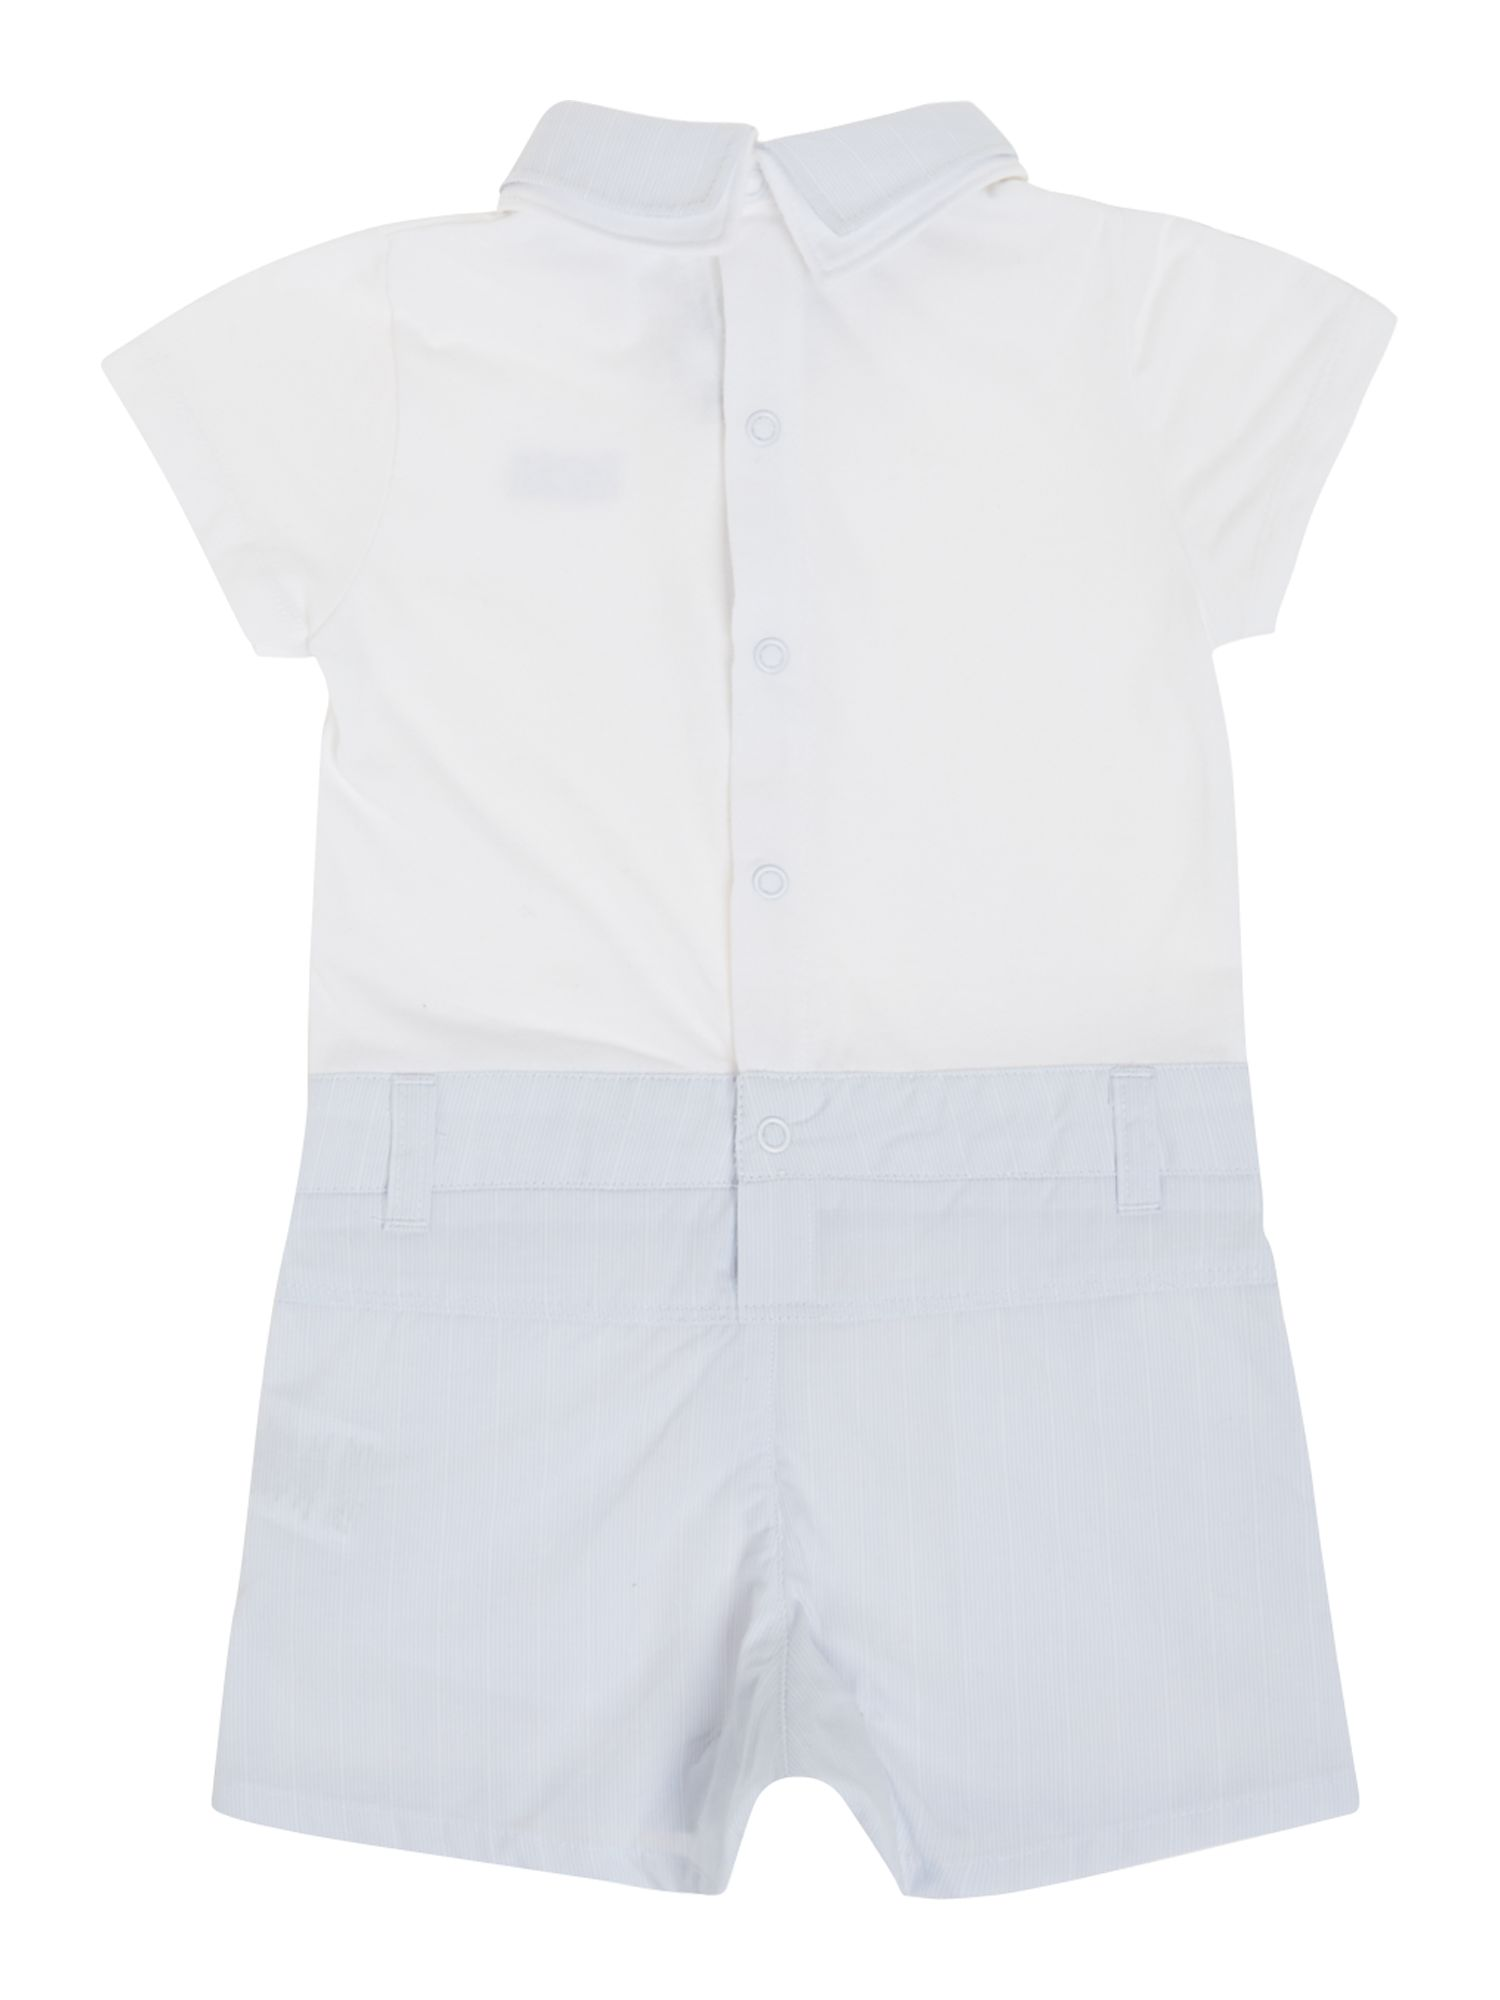 Baby boy`s polo and shorts in all in one